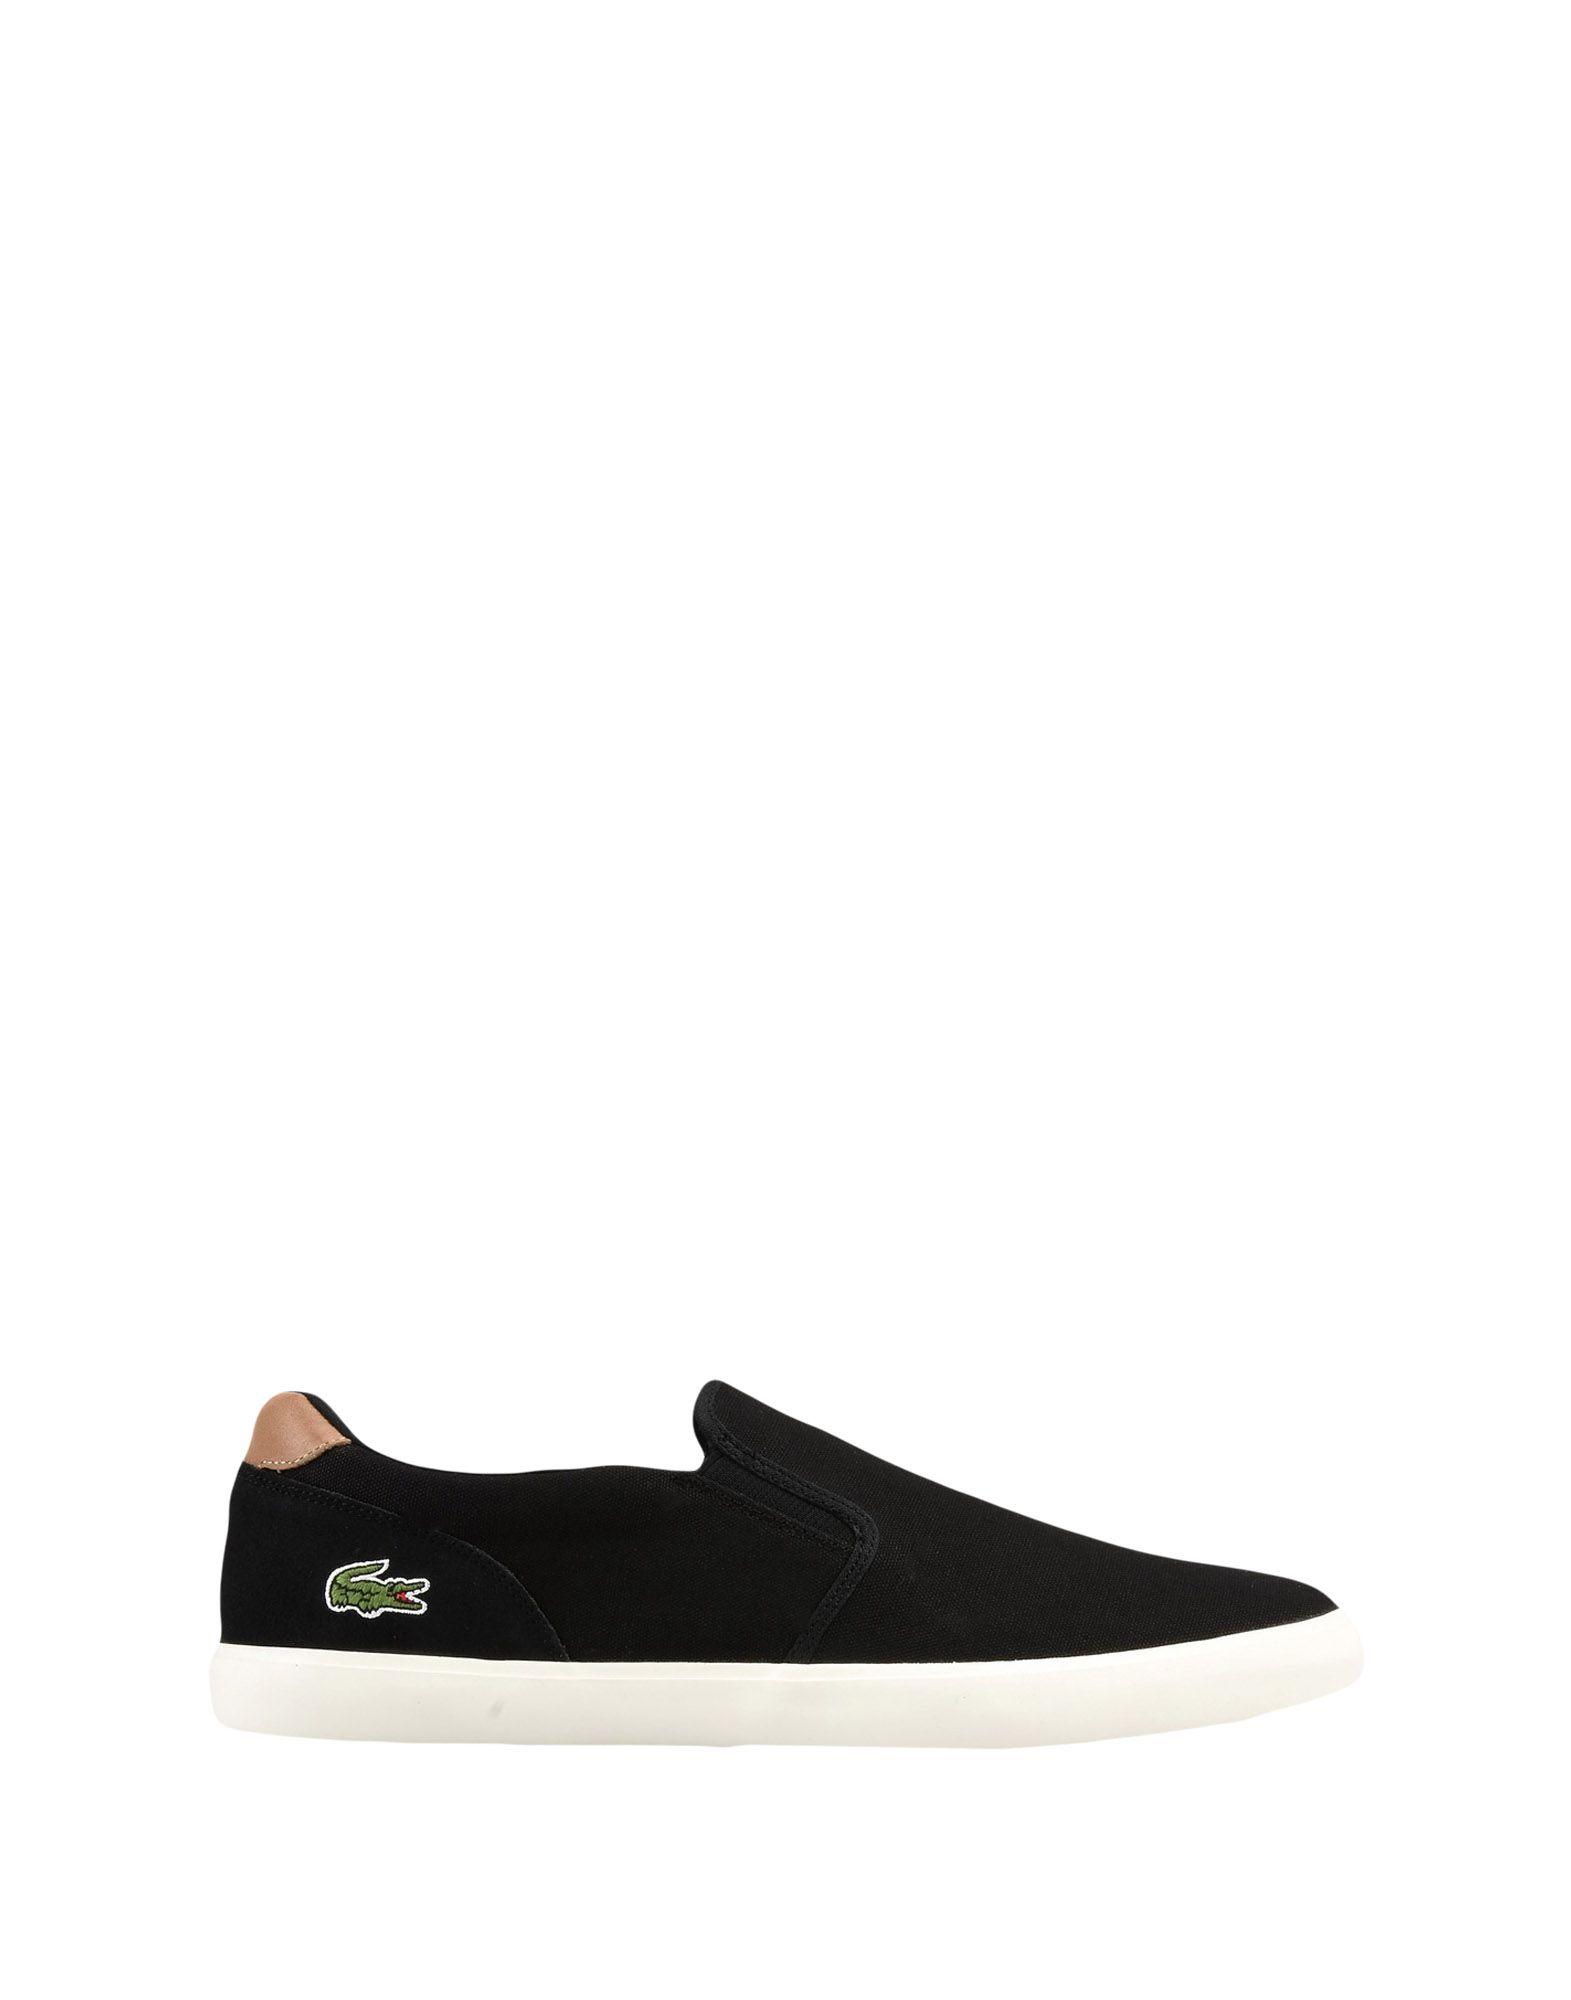 Sneakers Lacoste Jouer Slip-On 316 1 - - Uomo - - 11210844DR 98bf03